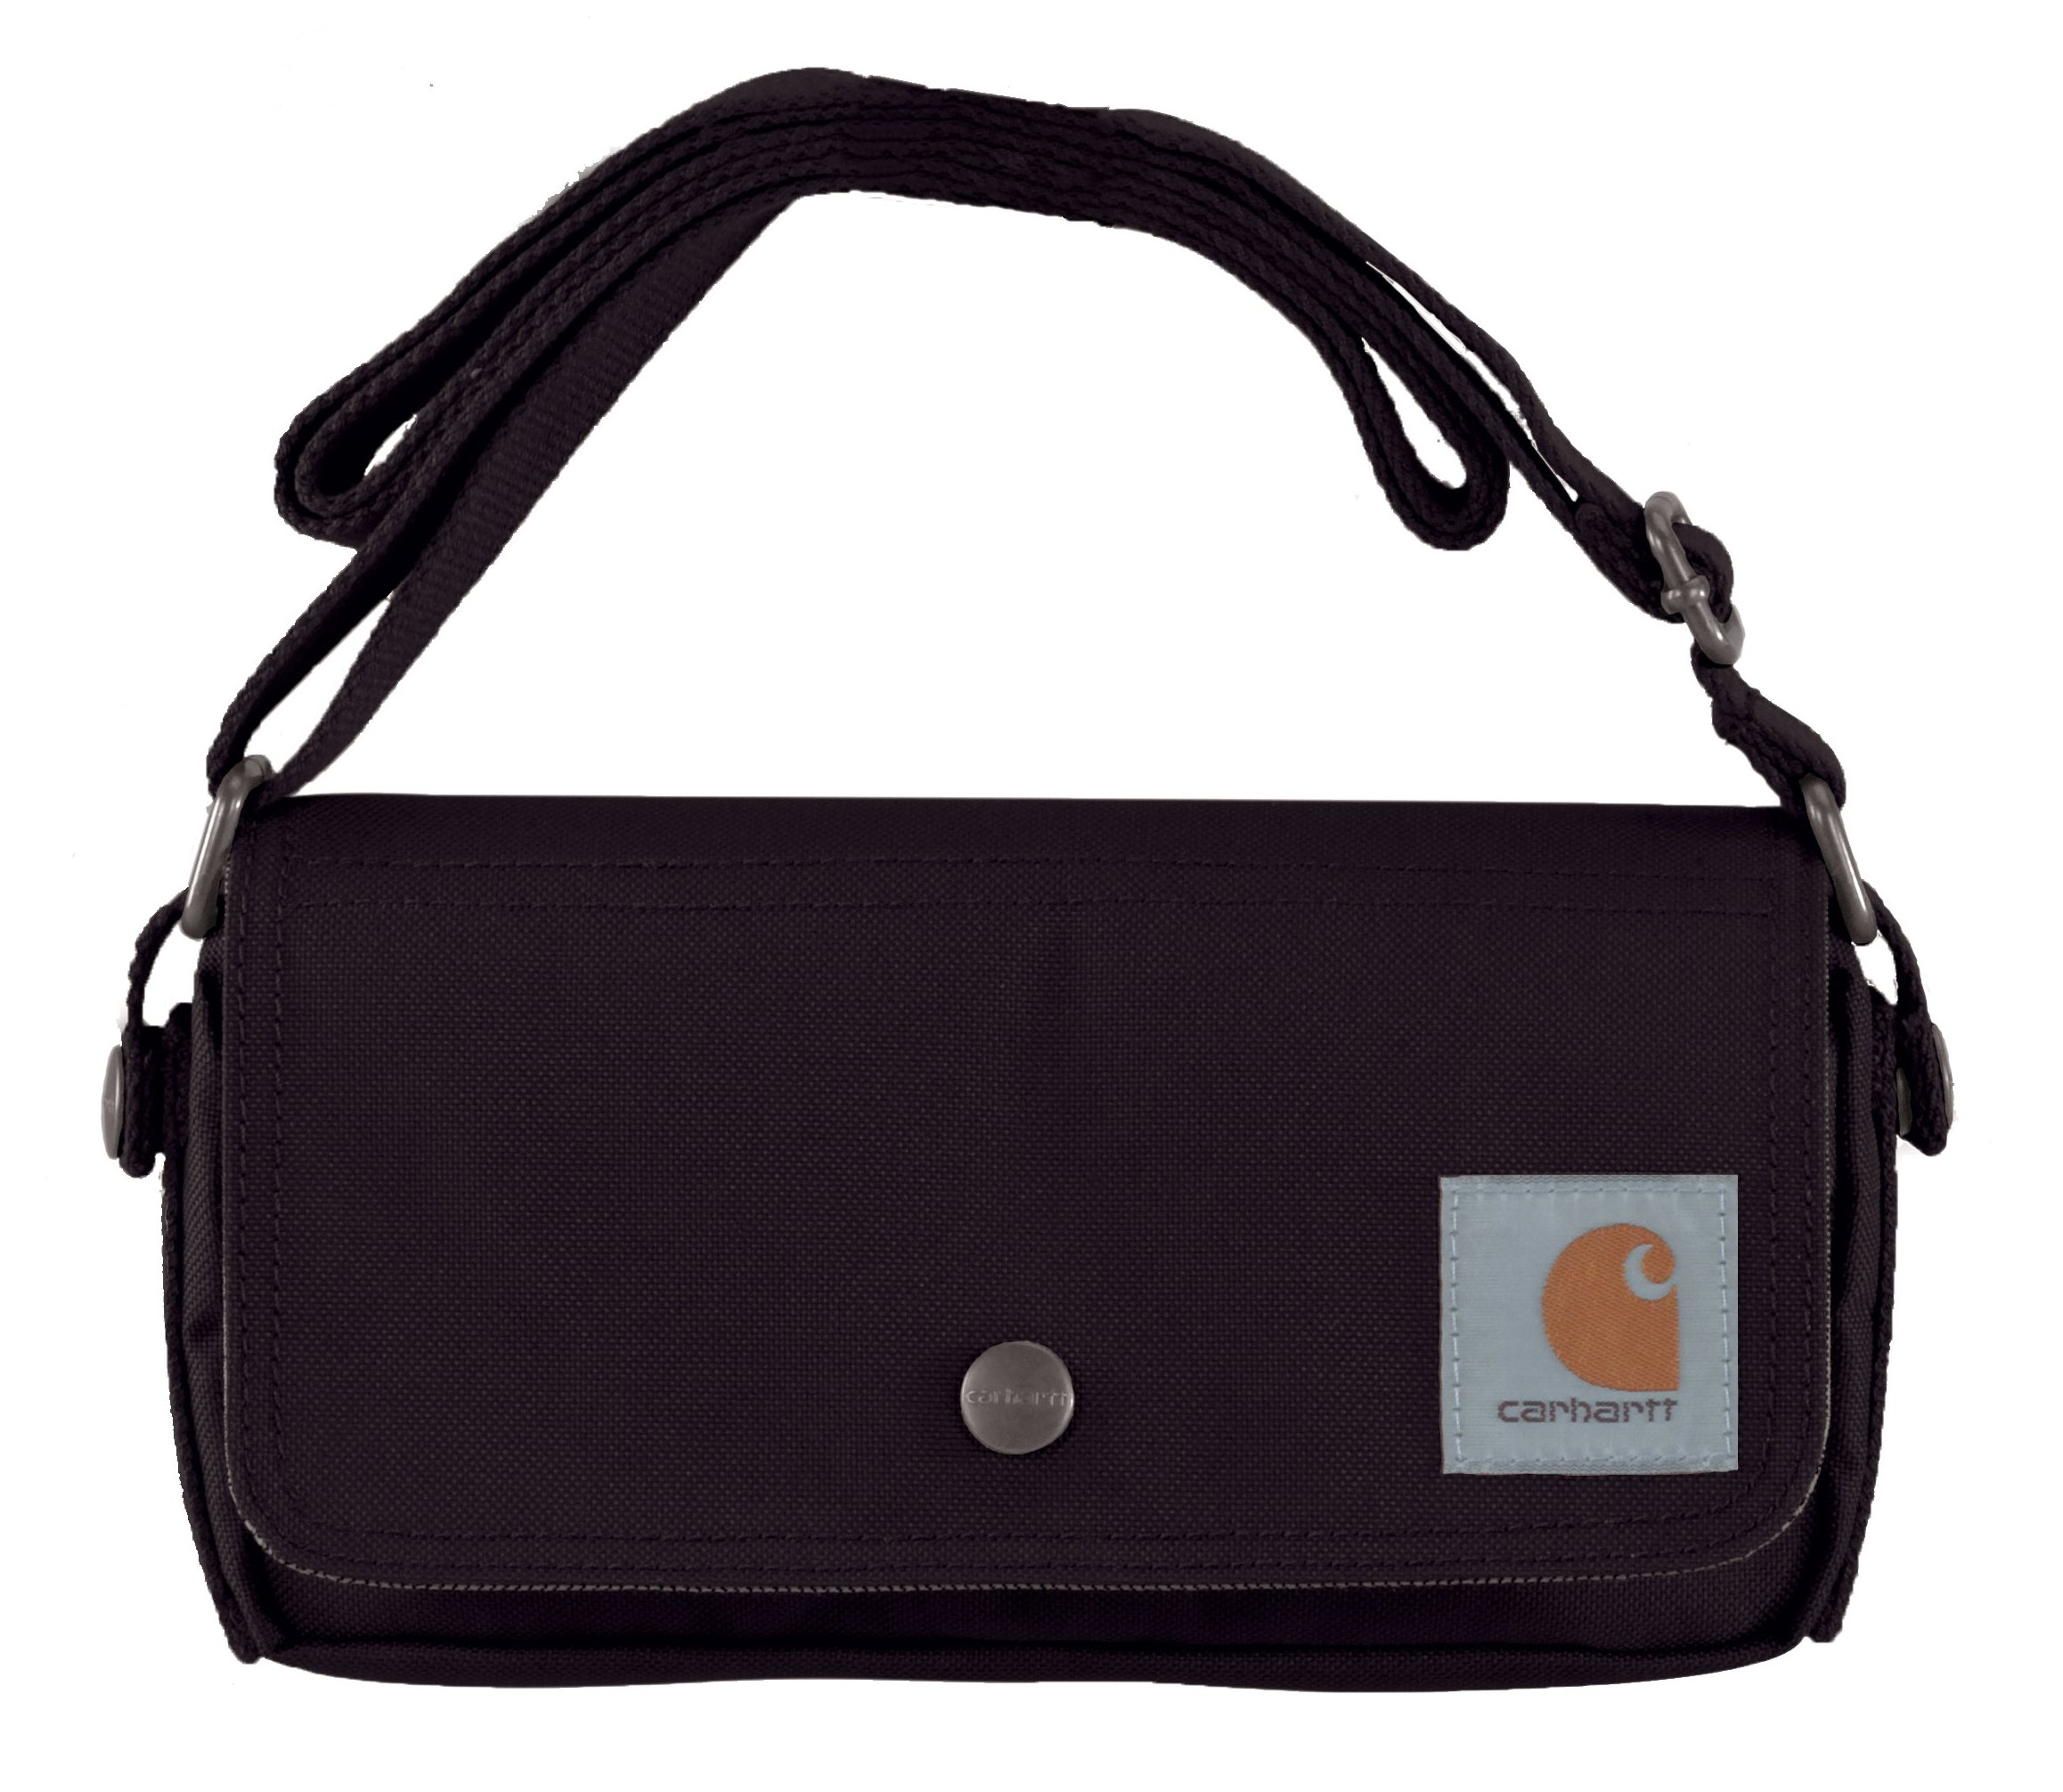 Carhartt Legacy Women's Essentials Crossbody Bag and Waist Pouch, Black by Carhartt